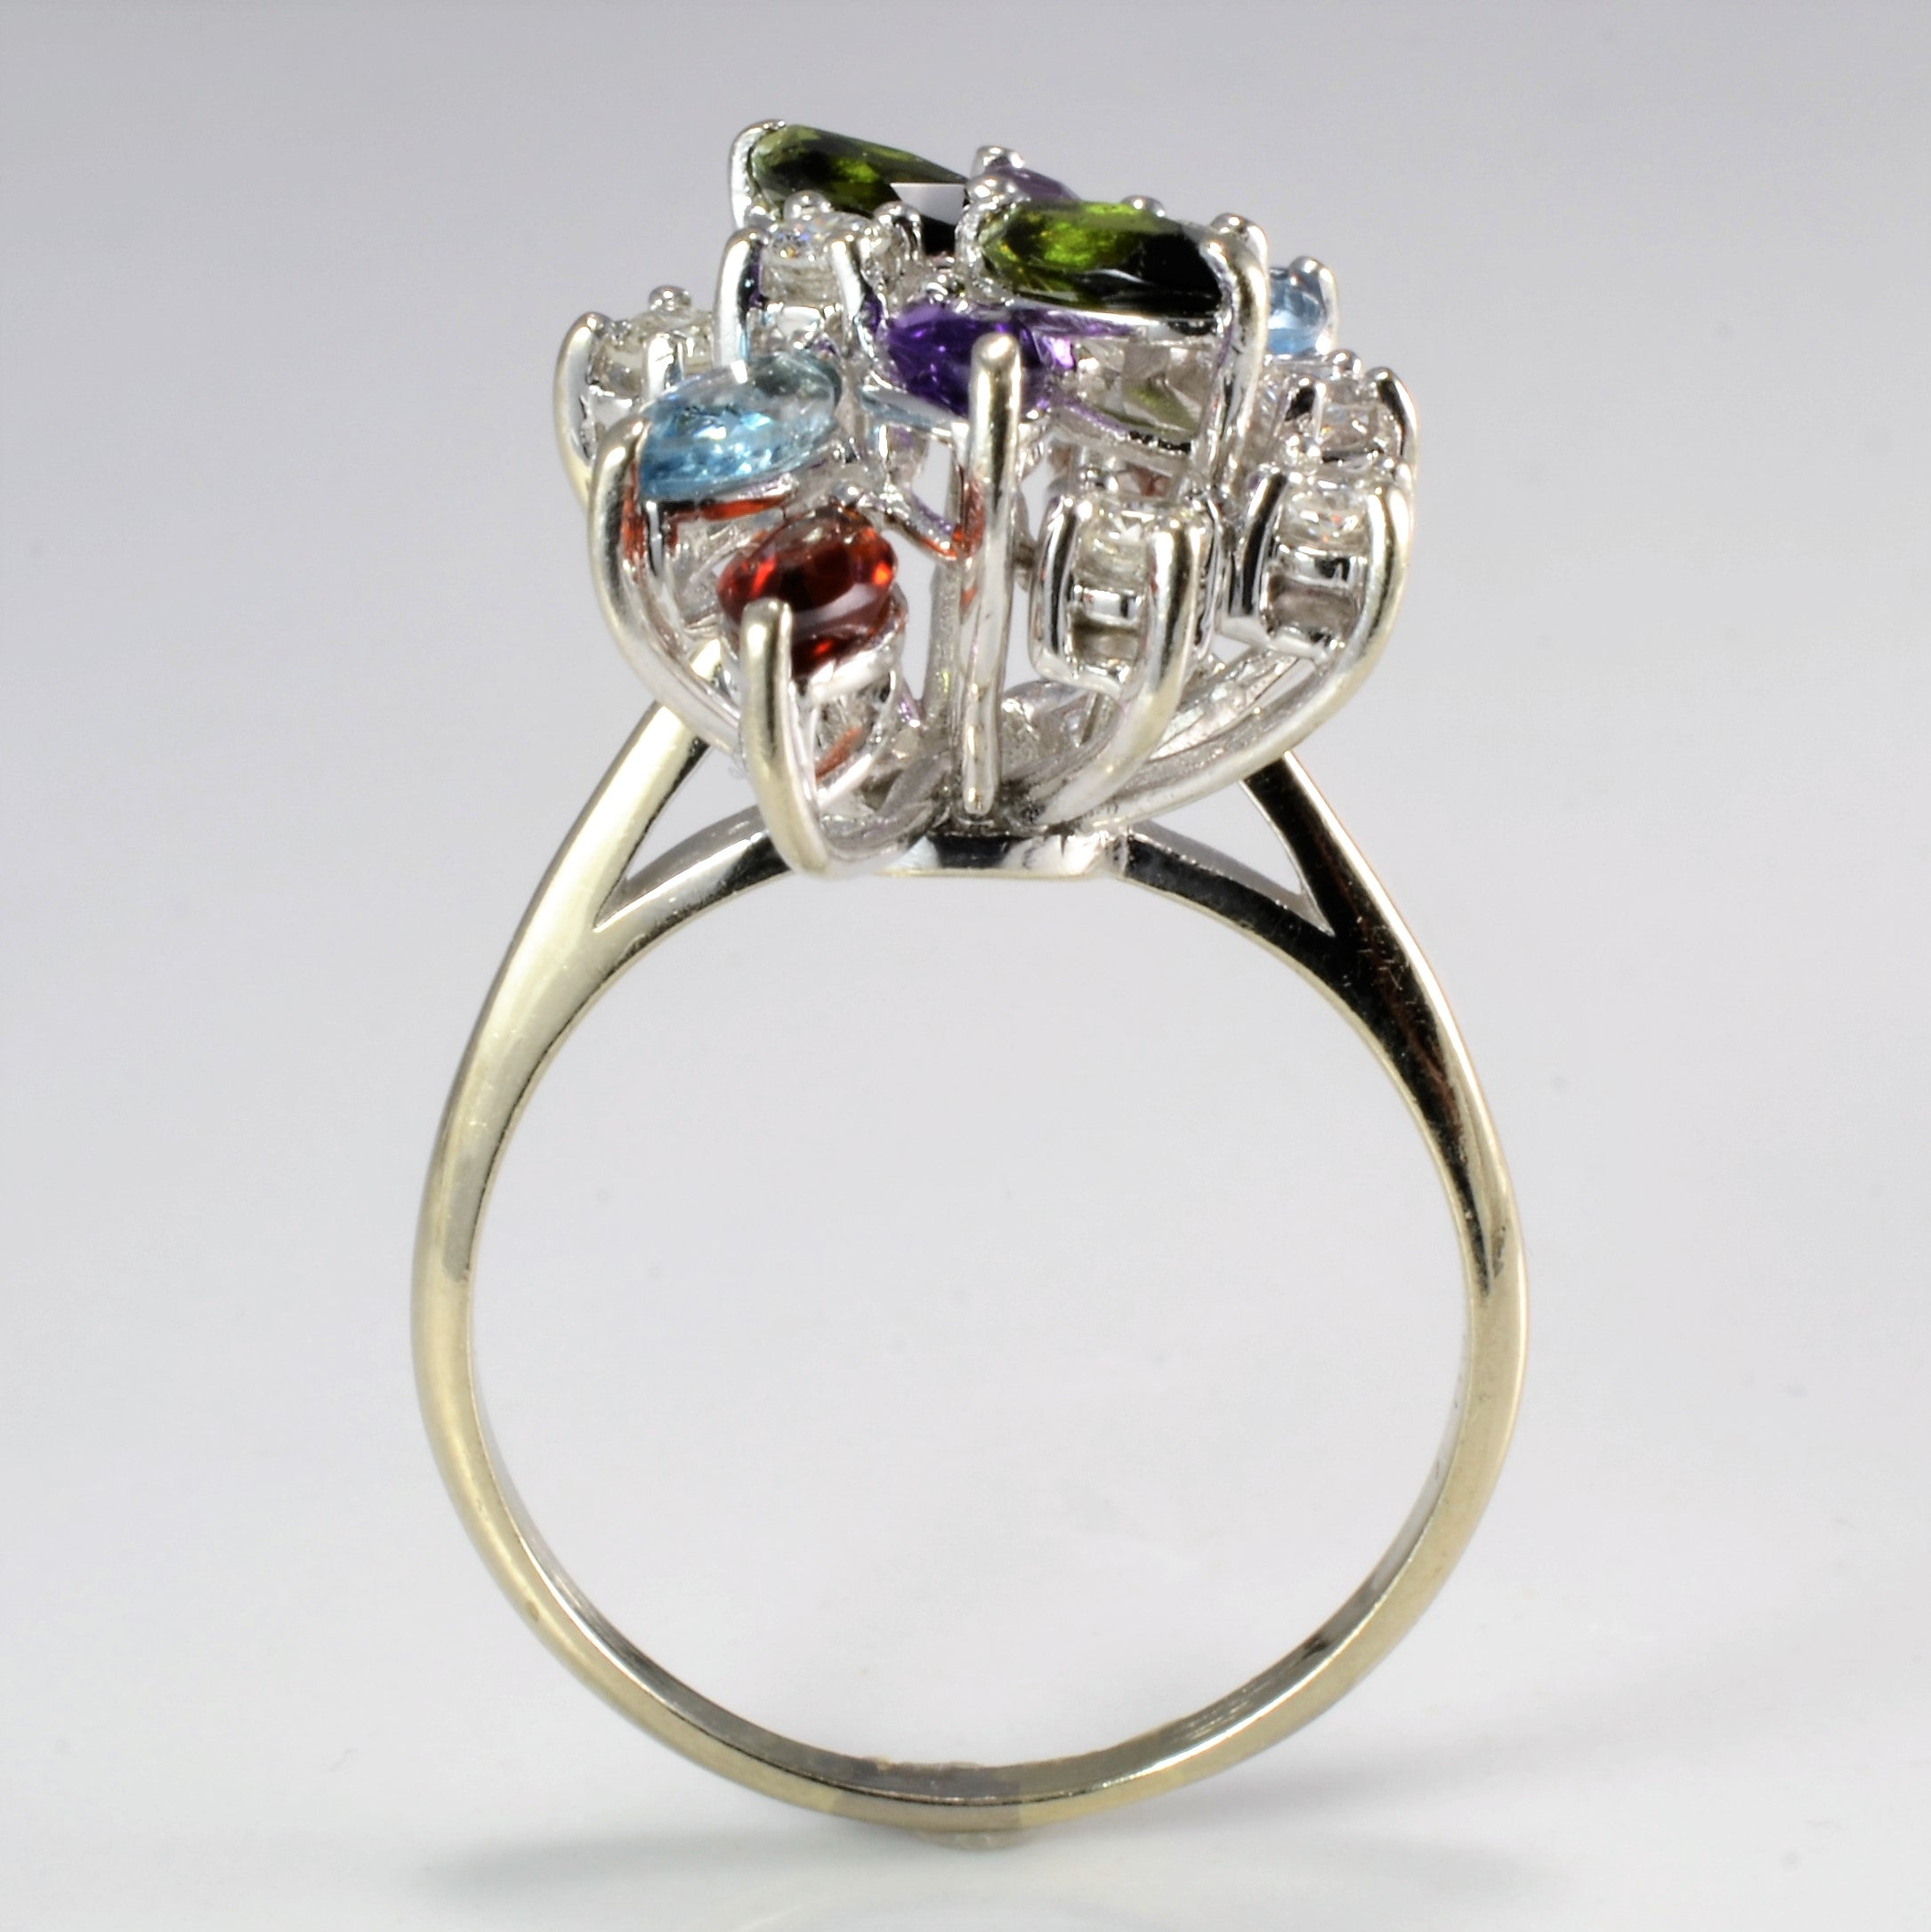 Floral Inspired Diamond & Multi Gemstone Ring | 0.40 ctw, SZ 9 |